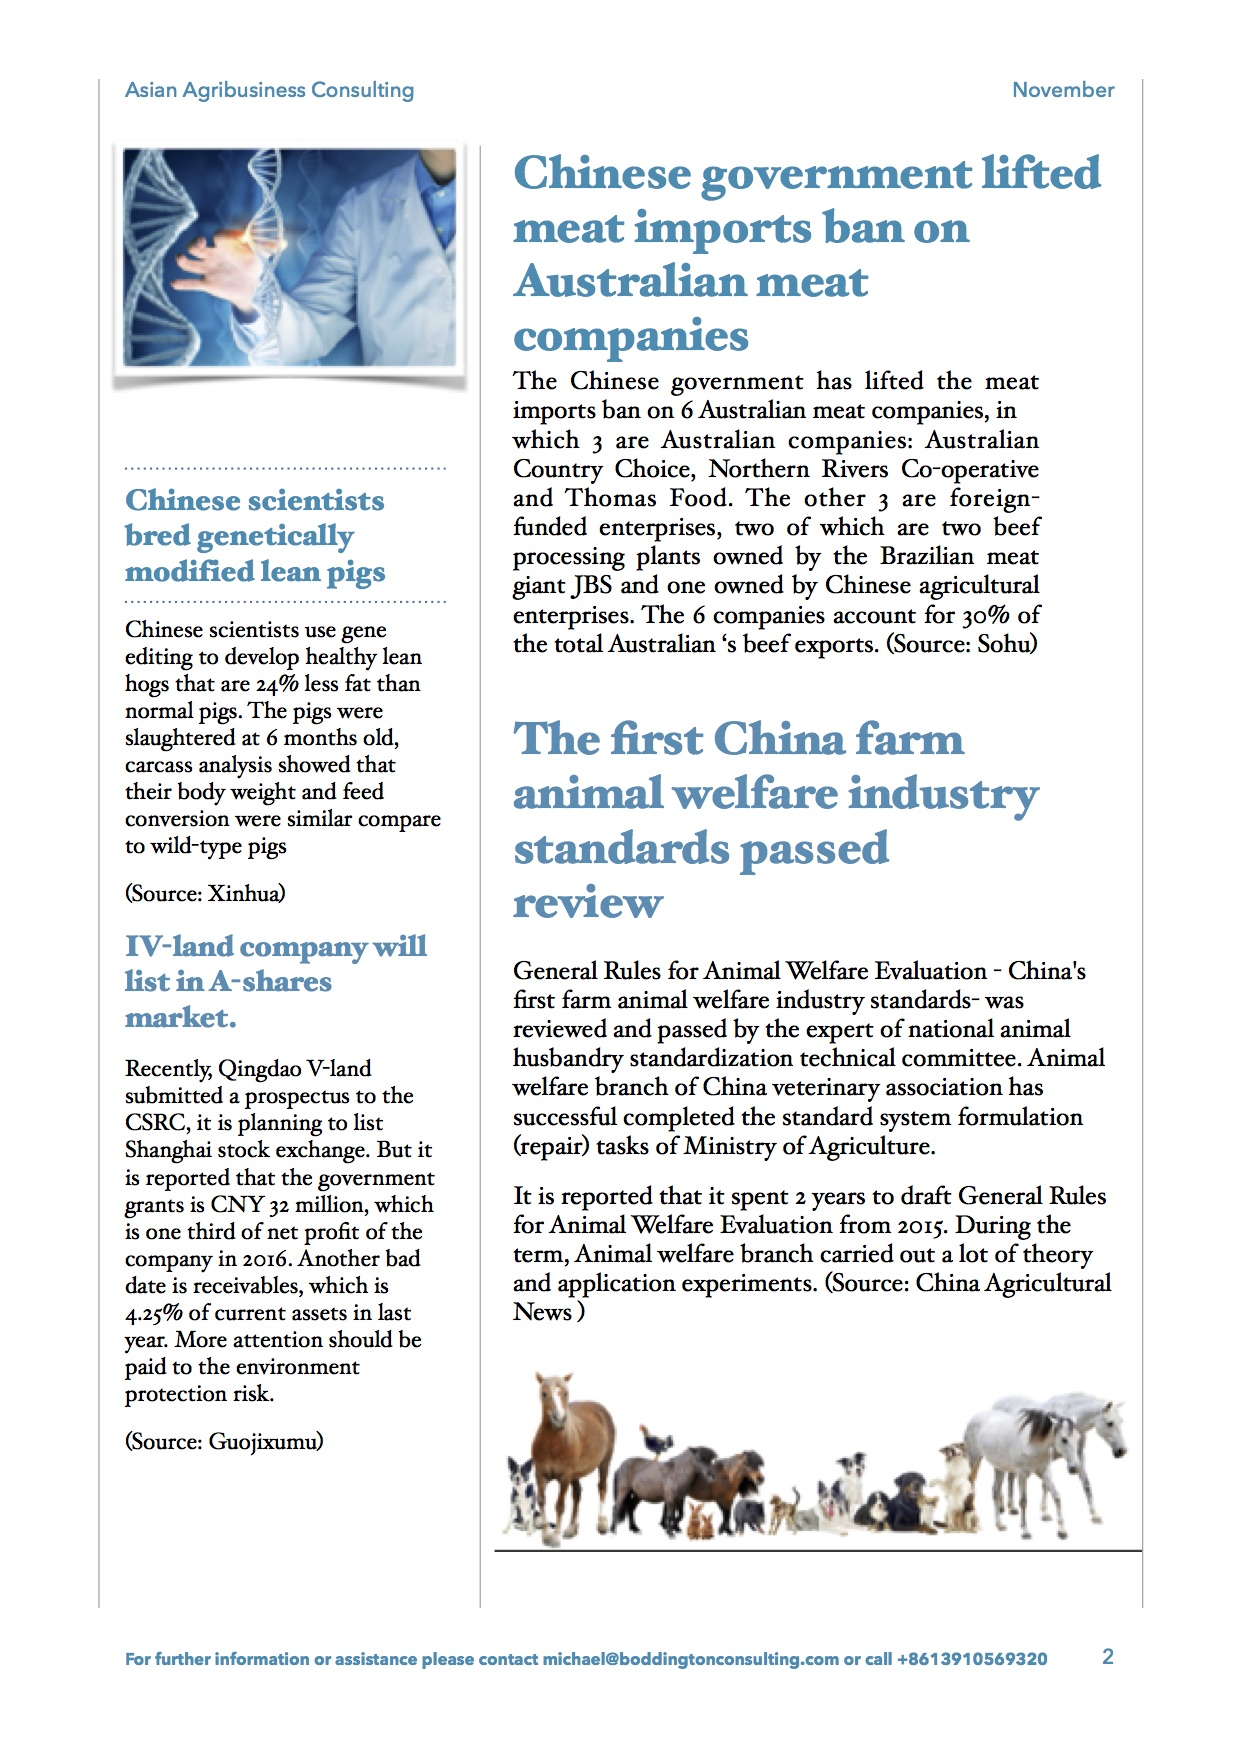 AACs November Livestock Animal Health Nutrition Newsletter2